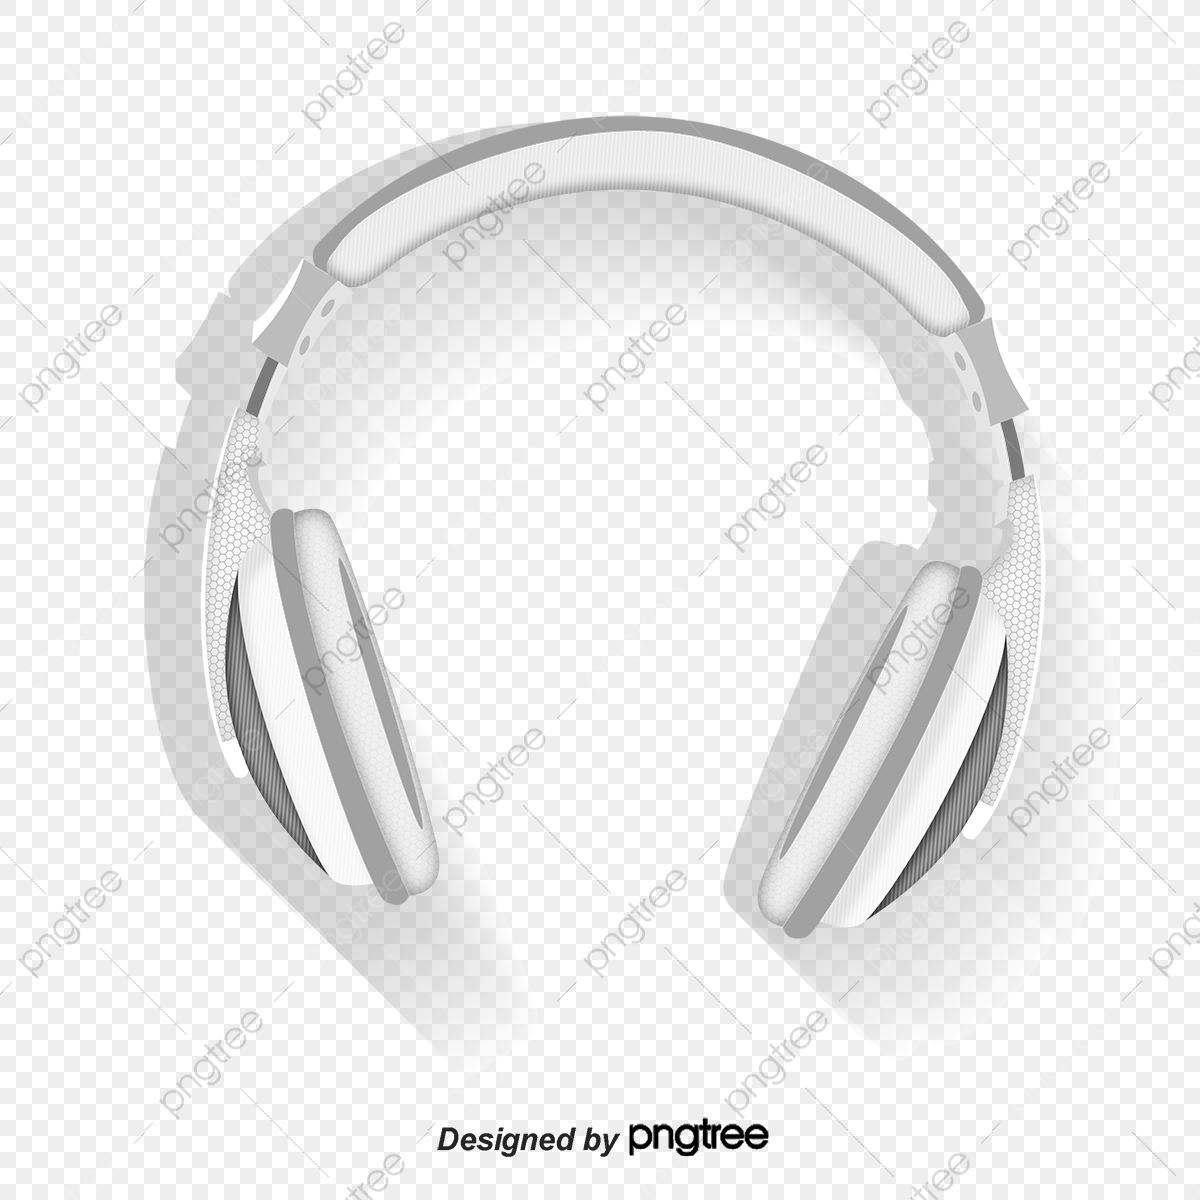 Beats Headphones Png Vector Psd And Clipart With Transparent Background For Free Download Pngtree